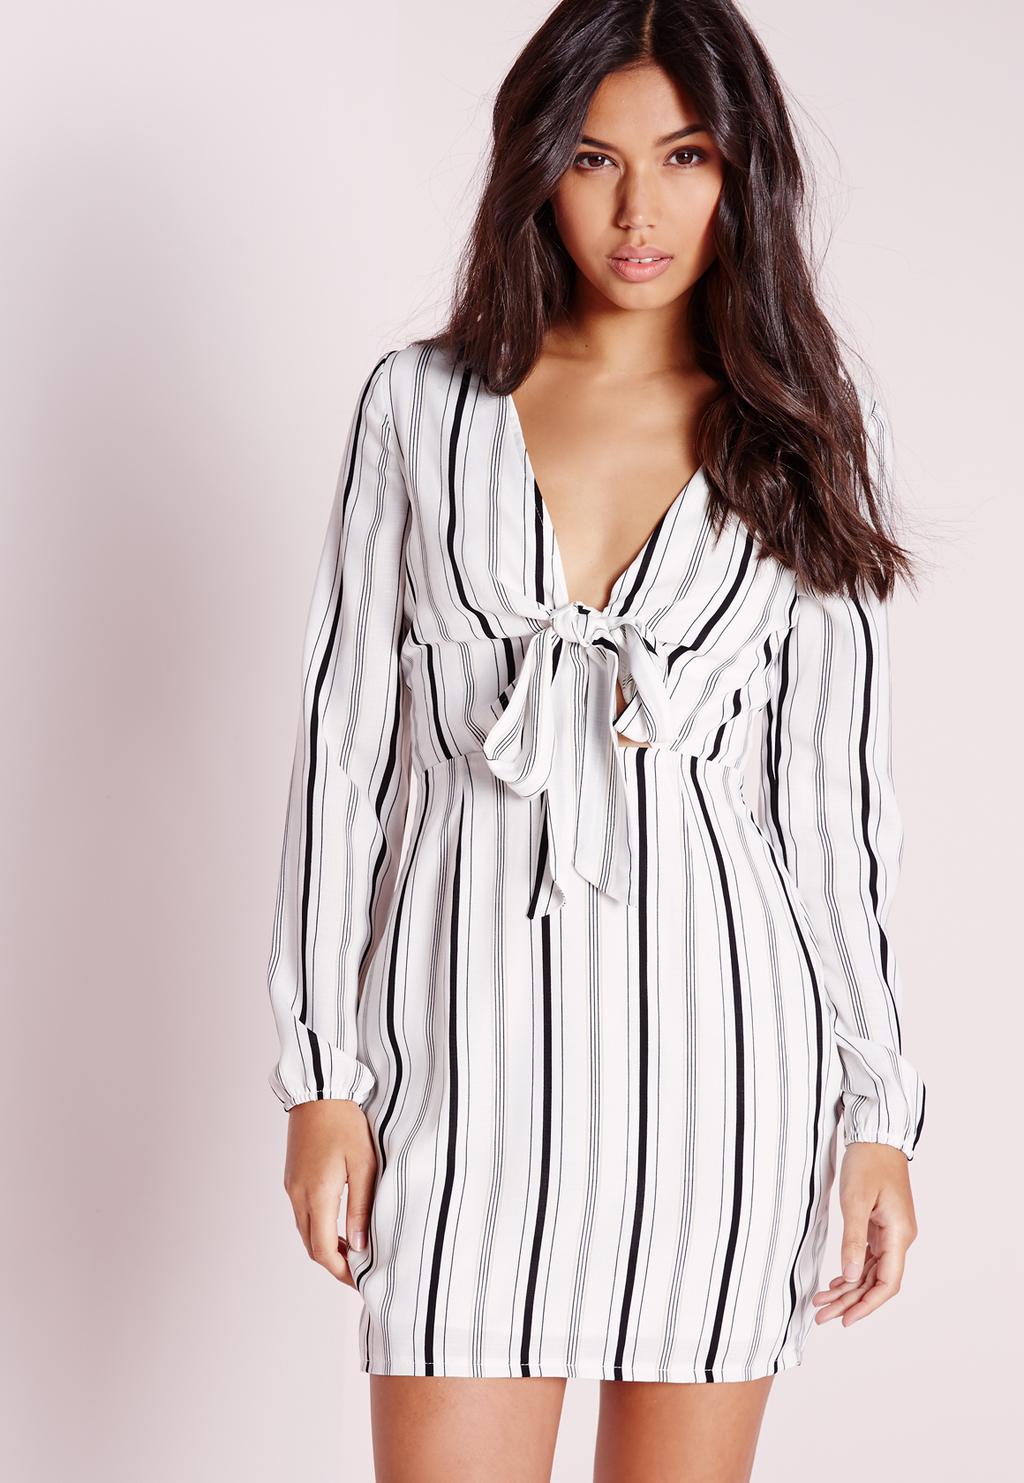 Tie Front Cut Out Stripe Dress White/Black, White - style: shirt; length: mini; neckline: low v-neck; pattern: pinstripe; predominant colour: white; secondary colour: black; occasions: evening; fit: body skimming; fibres: polyester/polyamide - 100%; sleeve length: long sleeve; sleeve style: standard; pattern type: fabric; texture group: other - light to midweight; multicoloured: multicoloured; season: s/s 2016; wardrobe: event